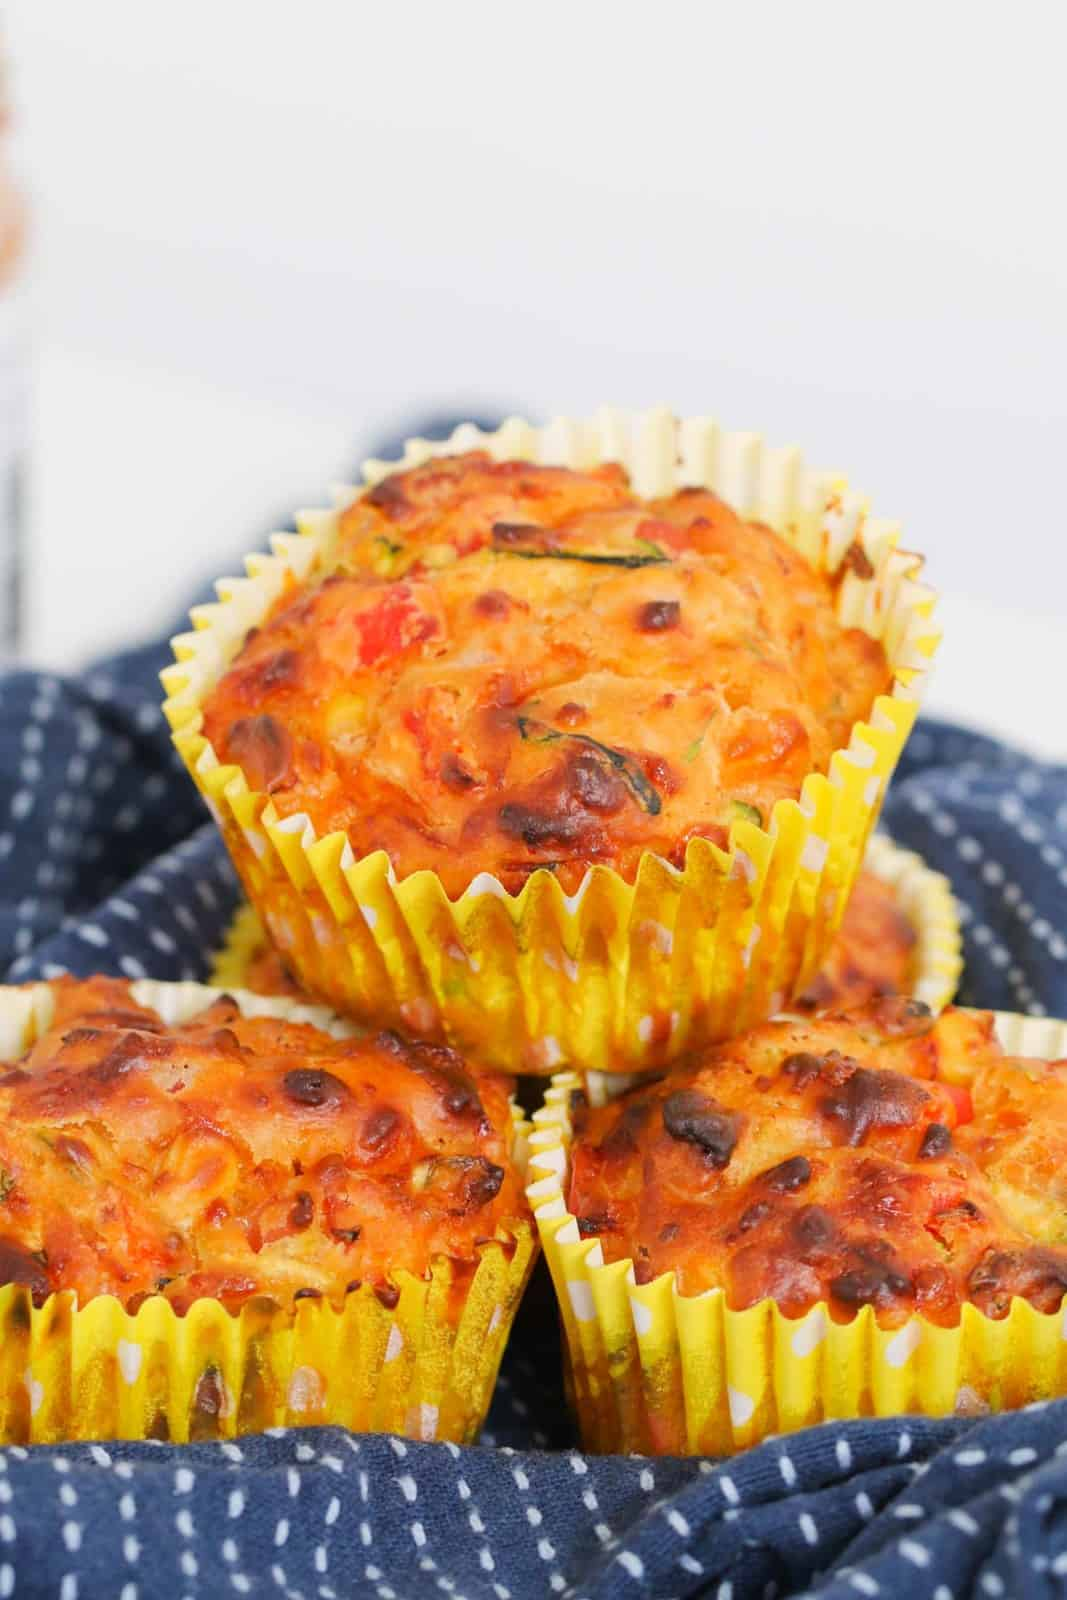 A stack of vegetable savoury muffins in yellow paper muffin cases.